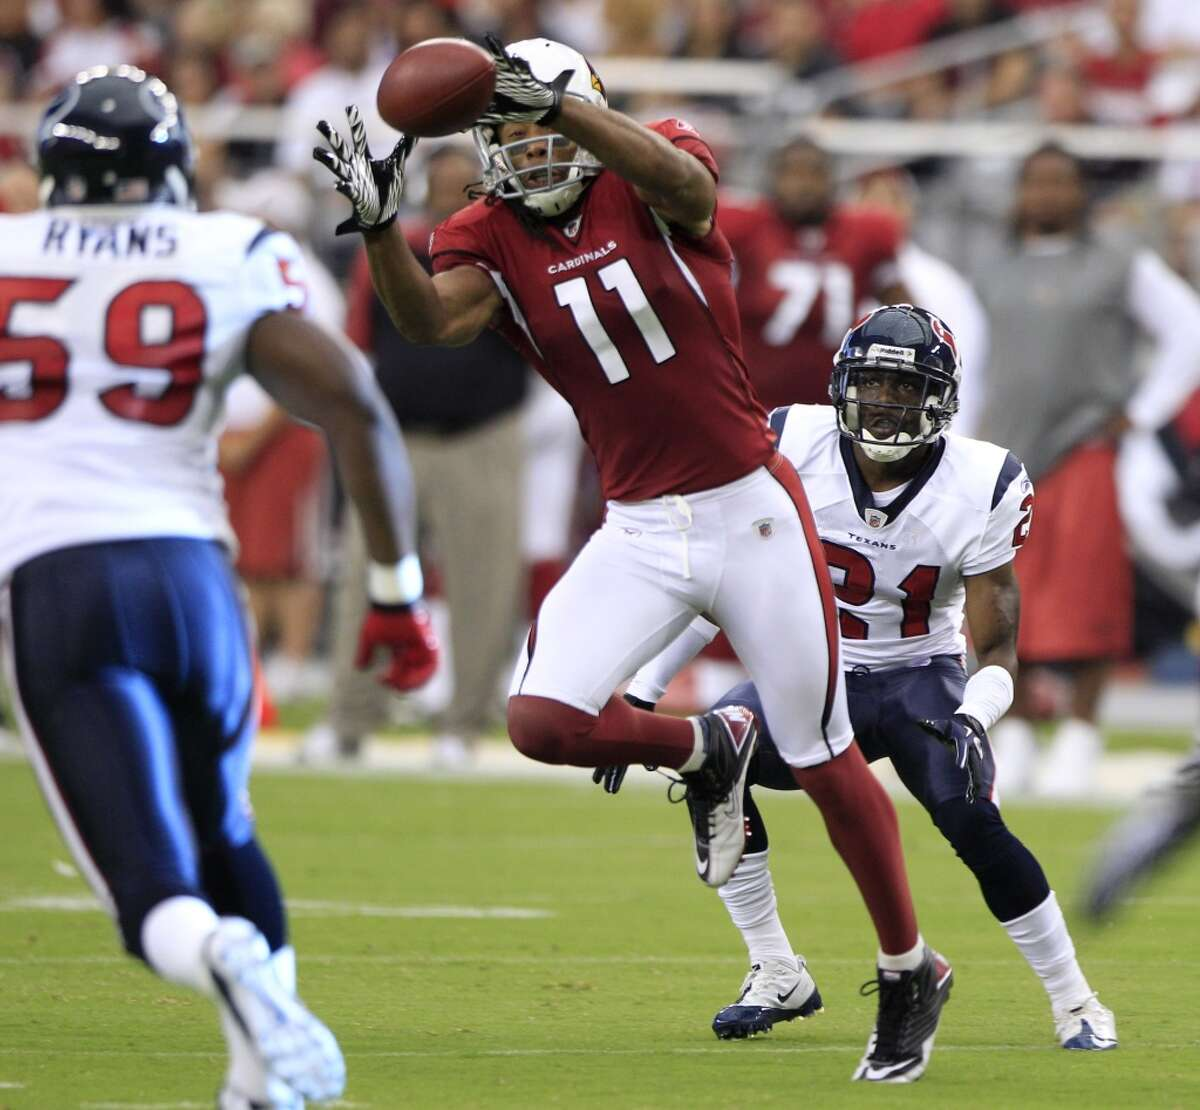 Arizona: Larry Fitzgerald, WR | 2004 first round (third overall) He's been the face of the franchise since he was drafted, helped the team reach a Super Bowl and has provided leadership while the team has emerged into one of the NFL's best.